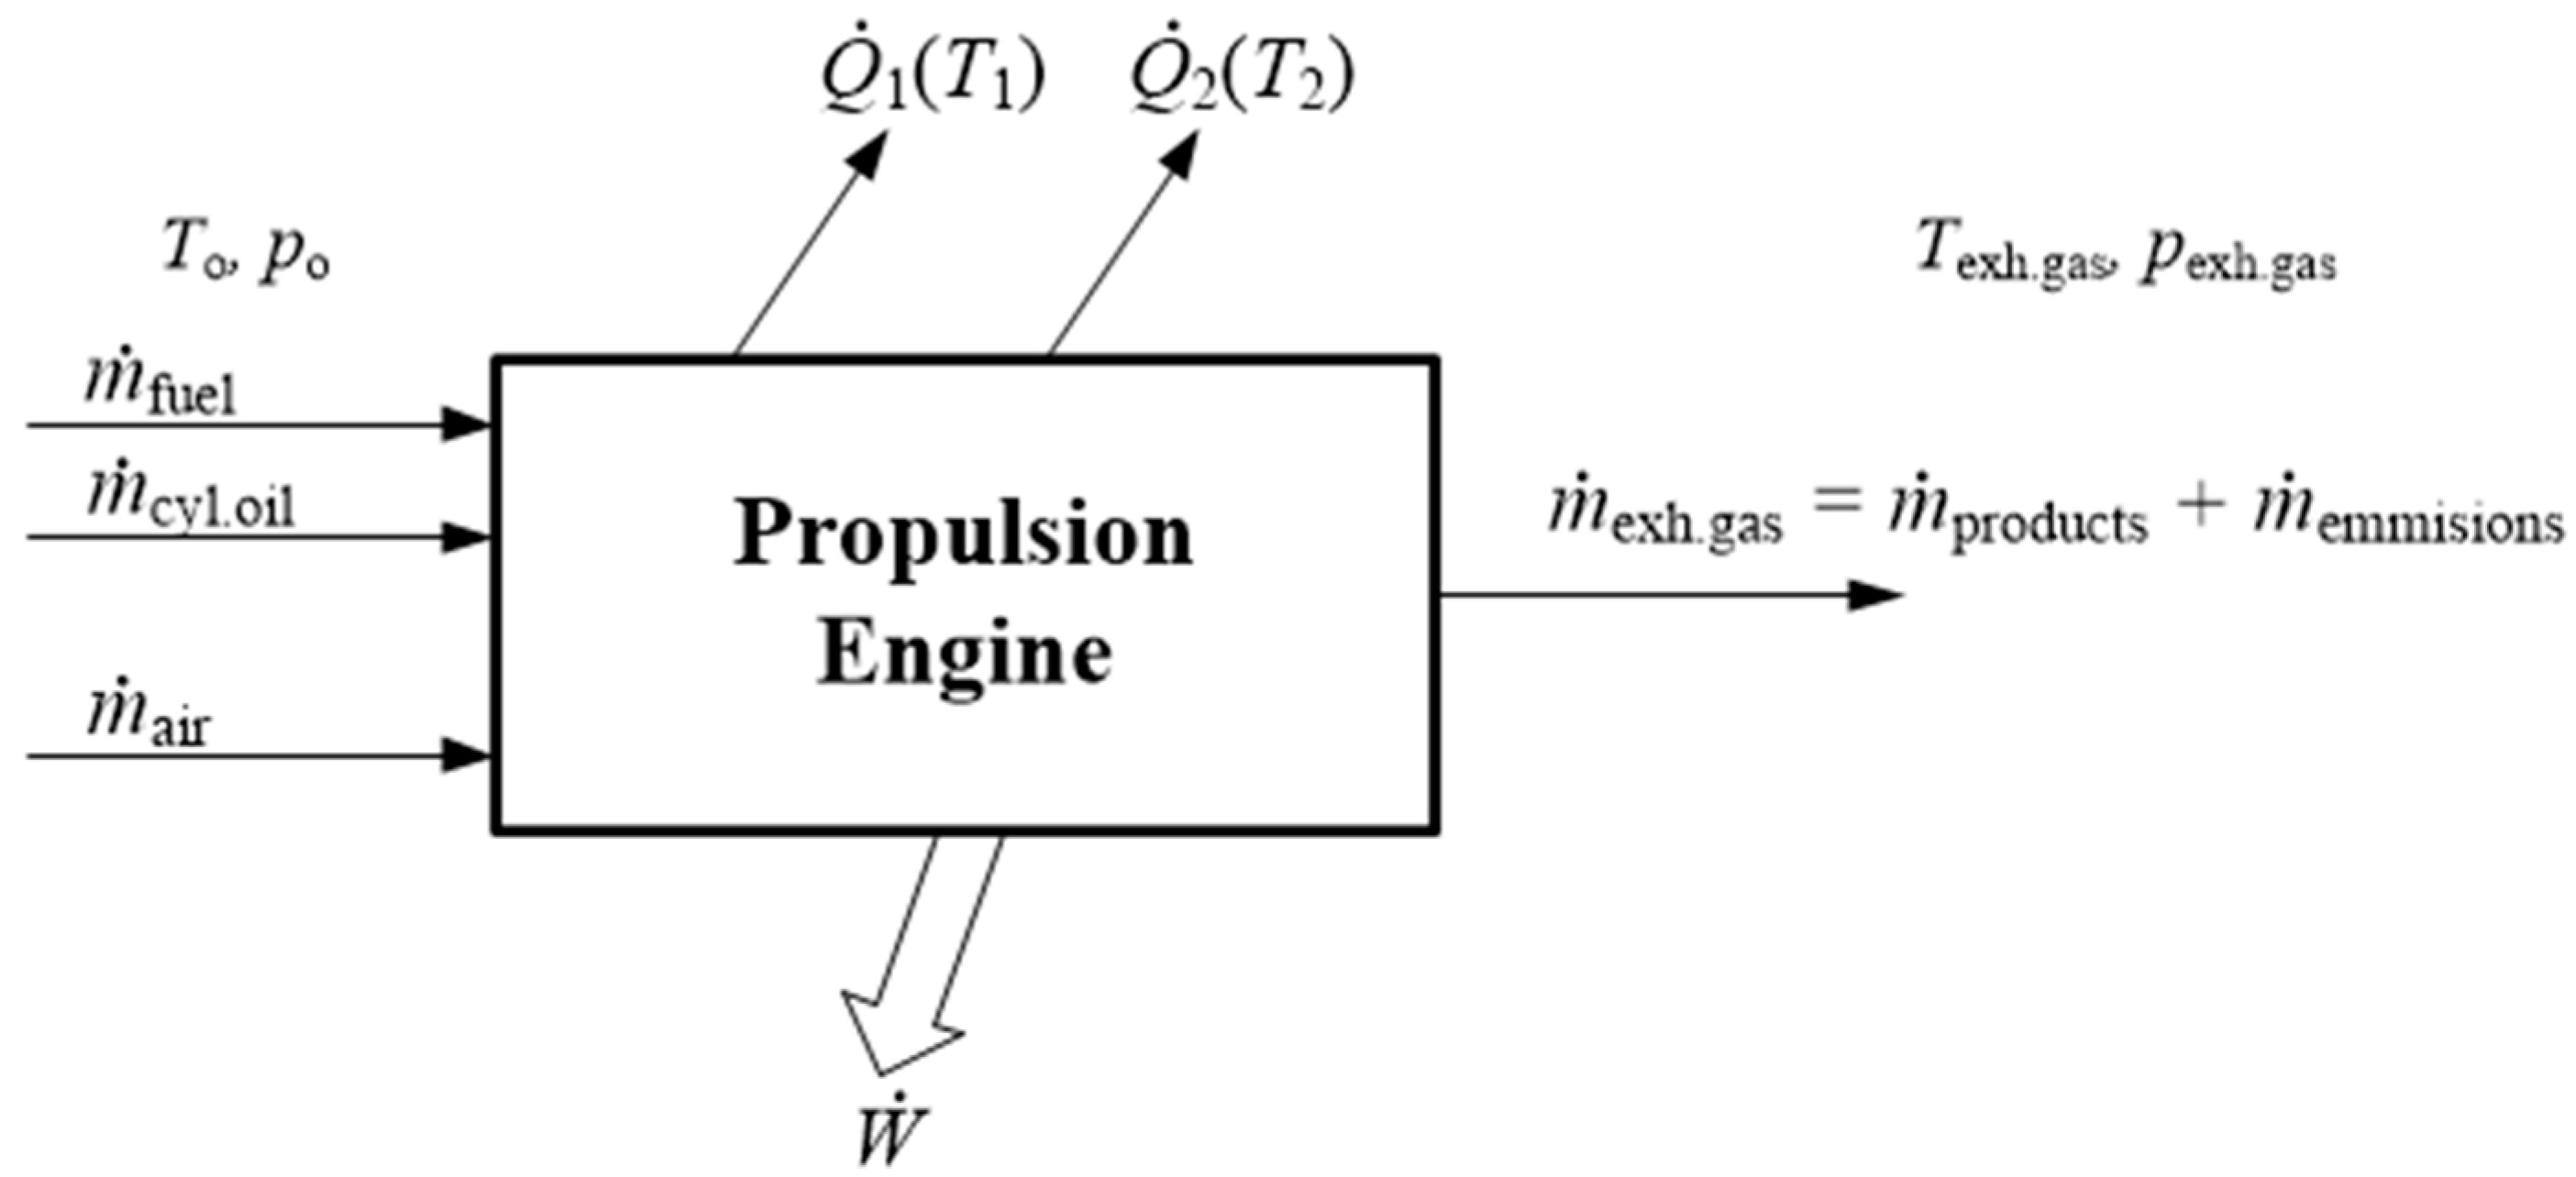 Engine Oiling Diagram Energies Free Full Text Of Engine Oiling Diagram